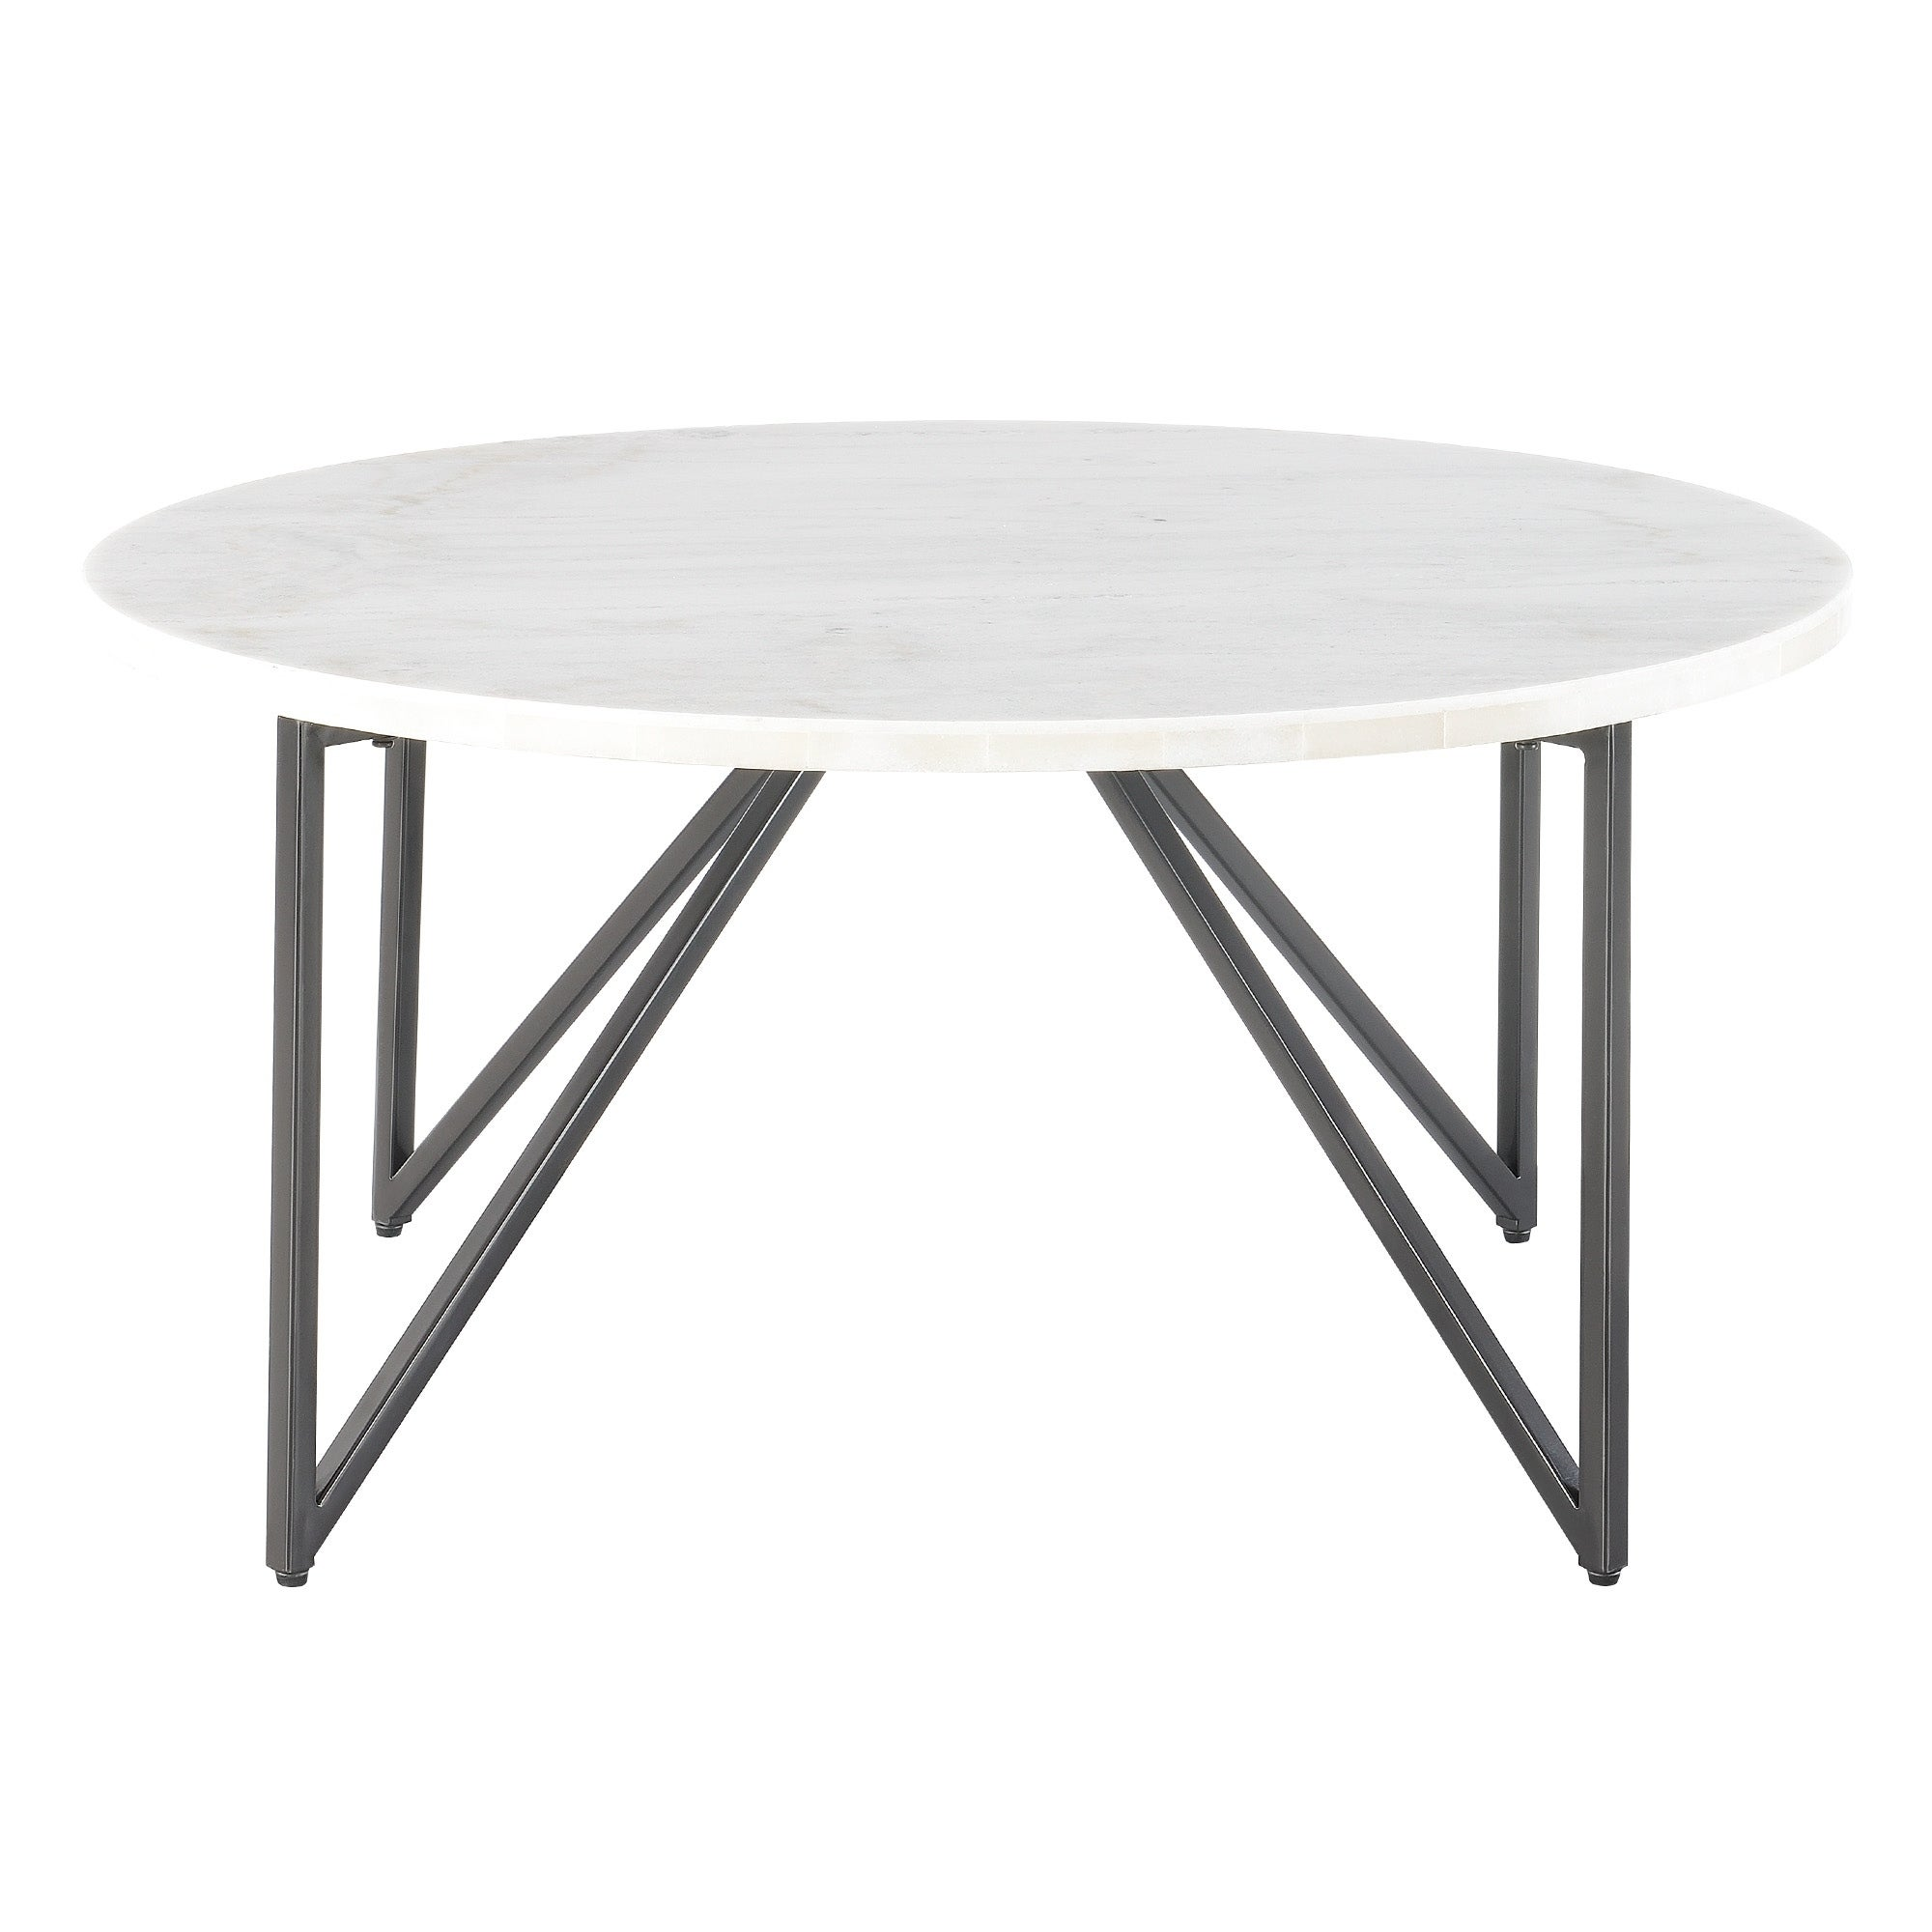 88dbfdf338 Shop Picket House Furnishings Kinsler Round White/Black Marble/Metal Coffee  Table - Free Shipping Today - Overstock - 24120878